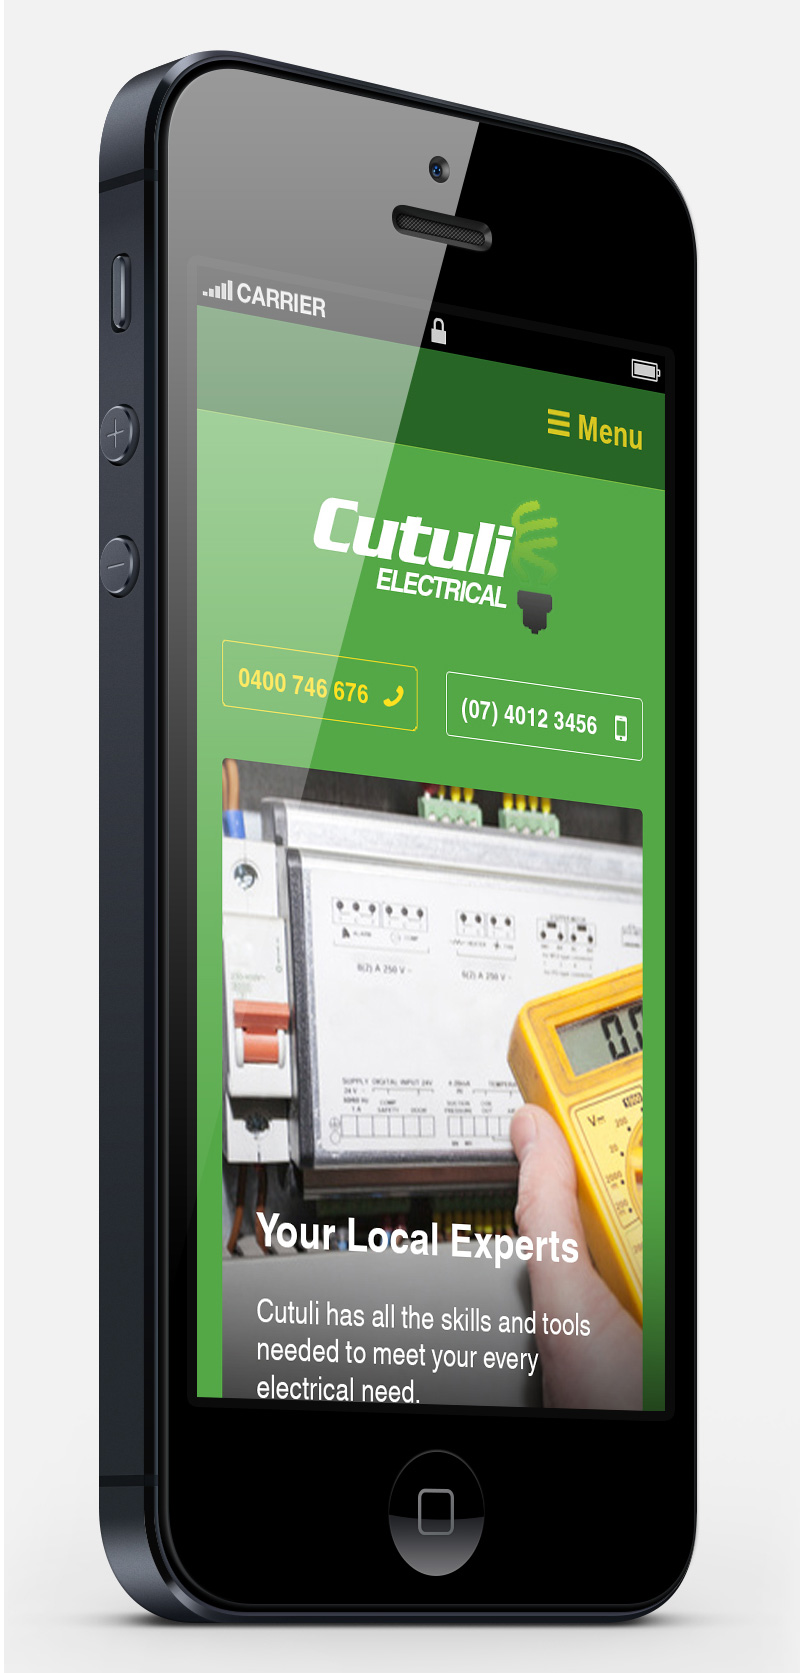 cutuli-electrical-phone